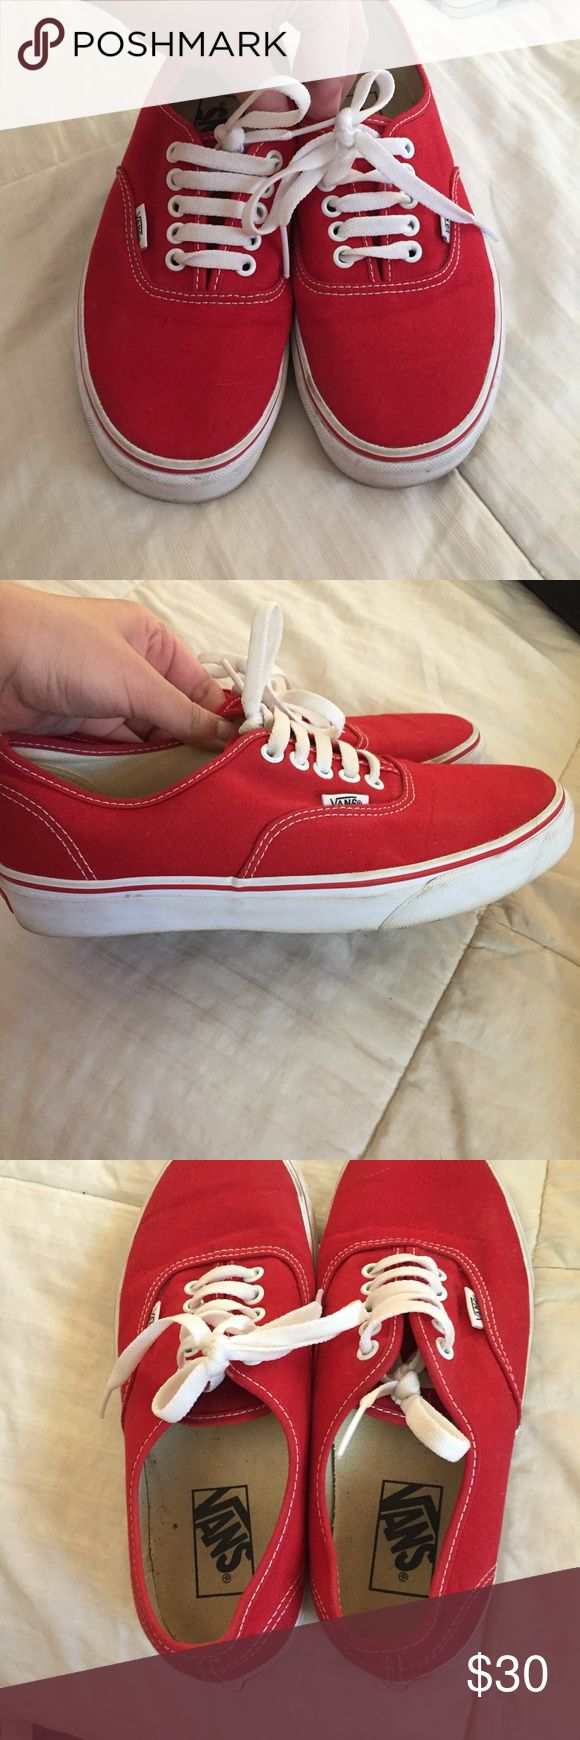 Vans Authentic Red Skate Shoes red Vans. used but not in bad condition at all. white bottom rim will be washed before shipping out! Vans Shoes Sneakers